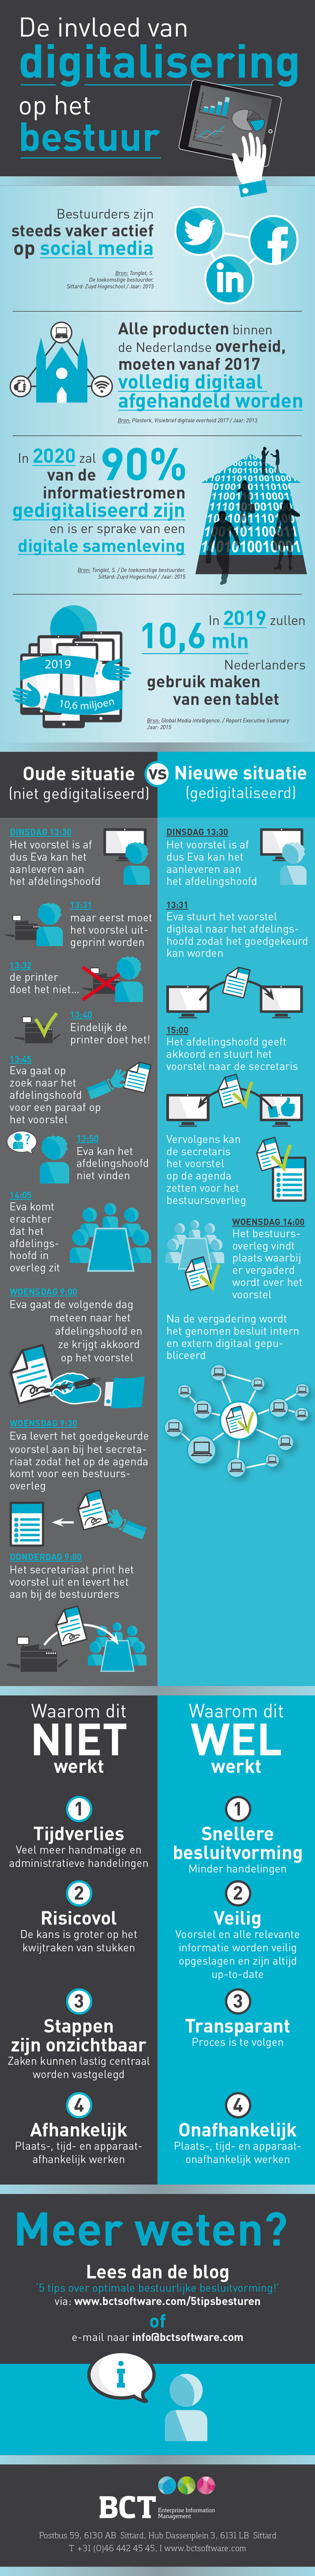 Infographic-digitalisering-bestuur-blog-bct